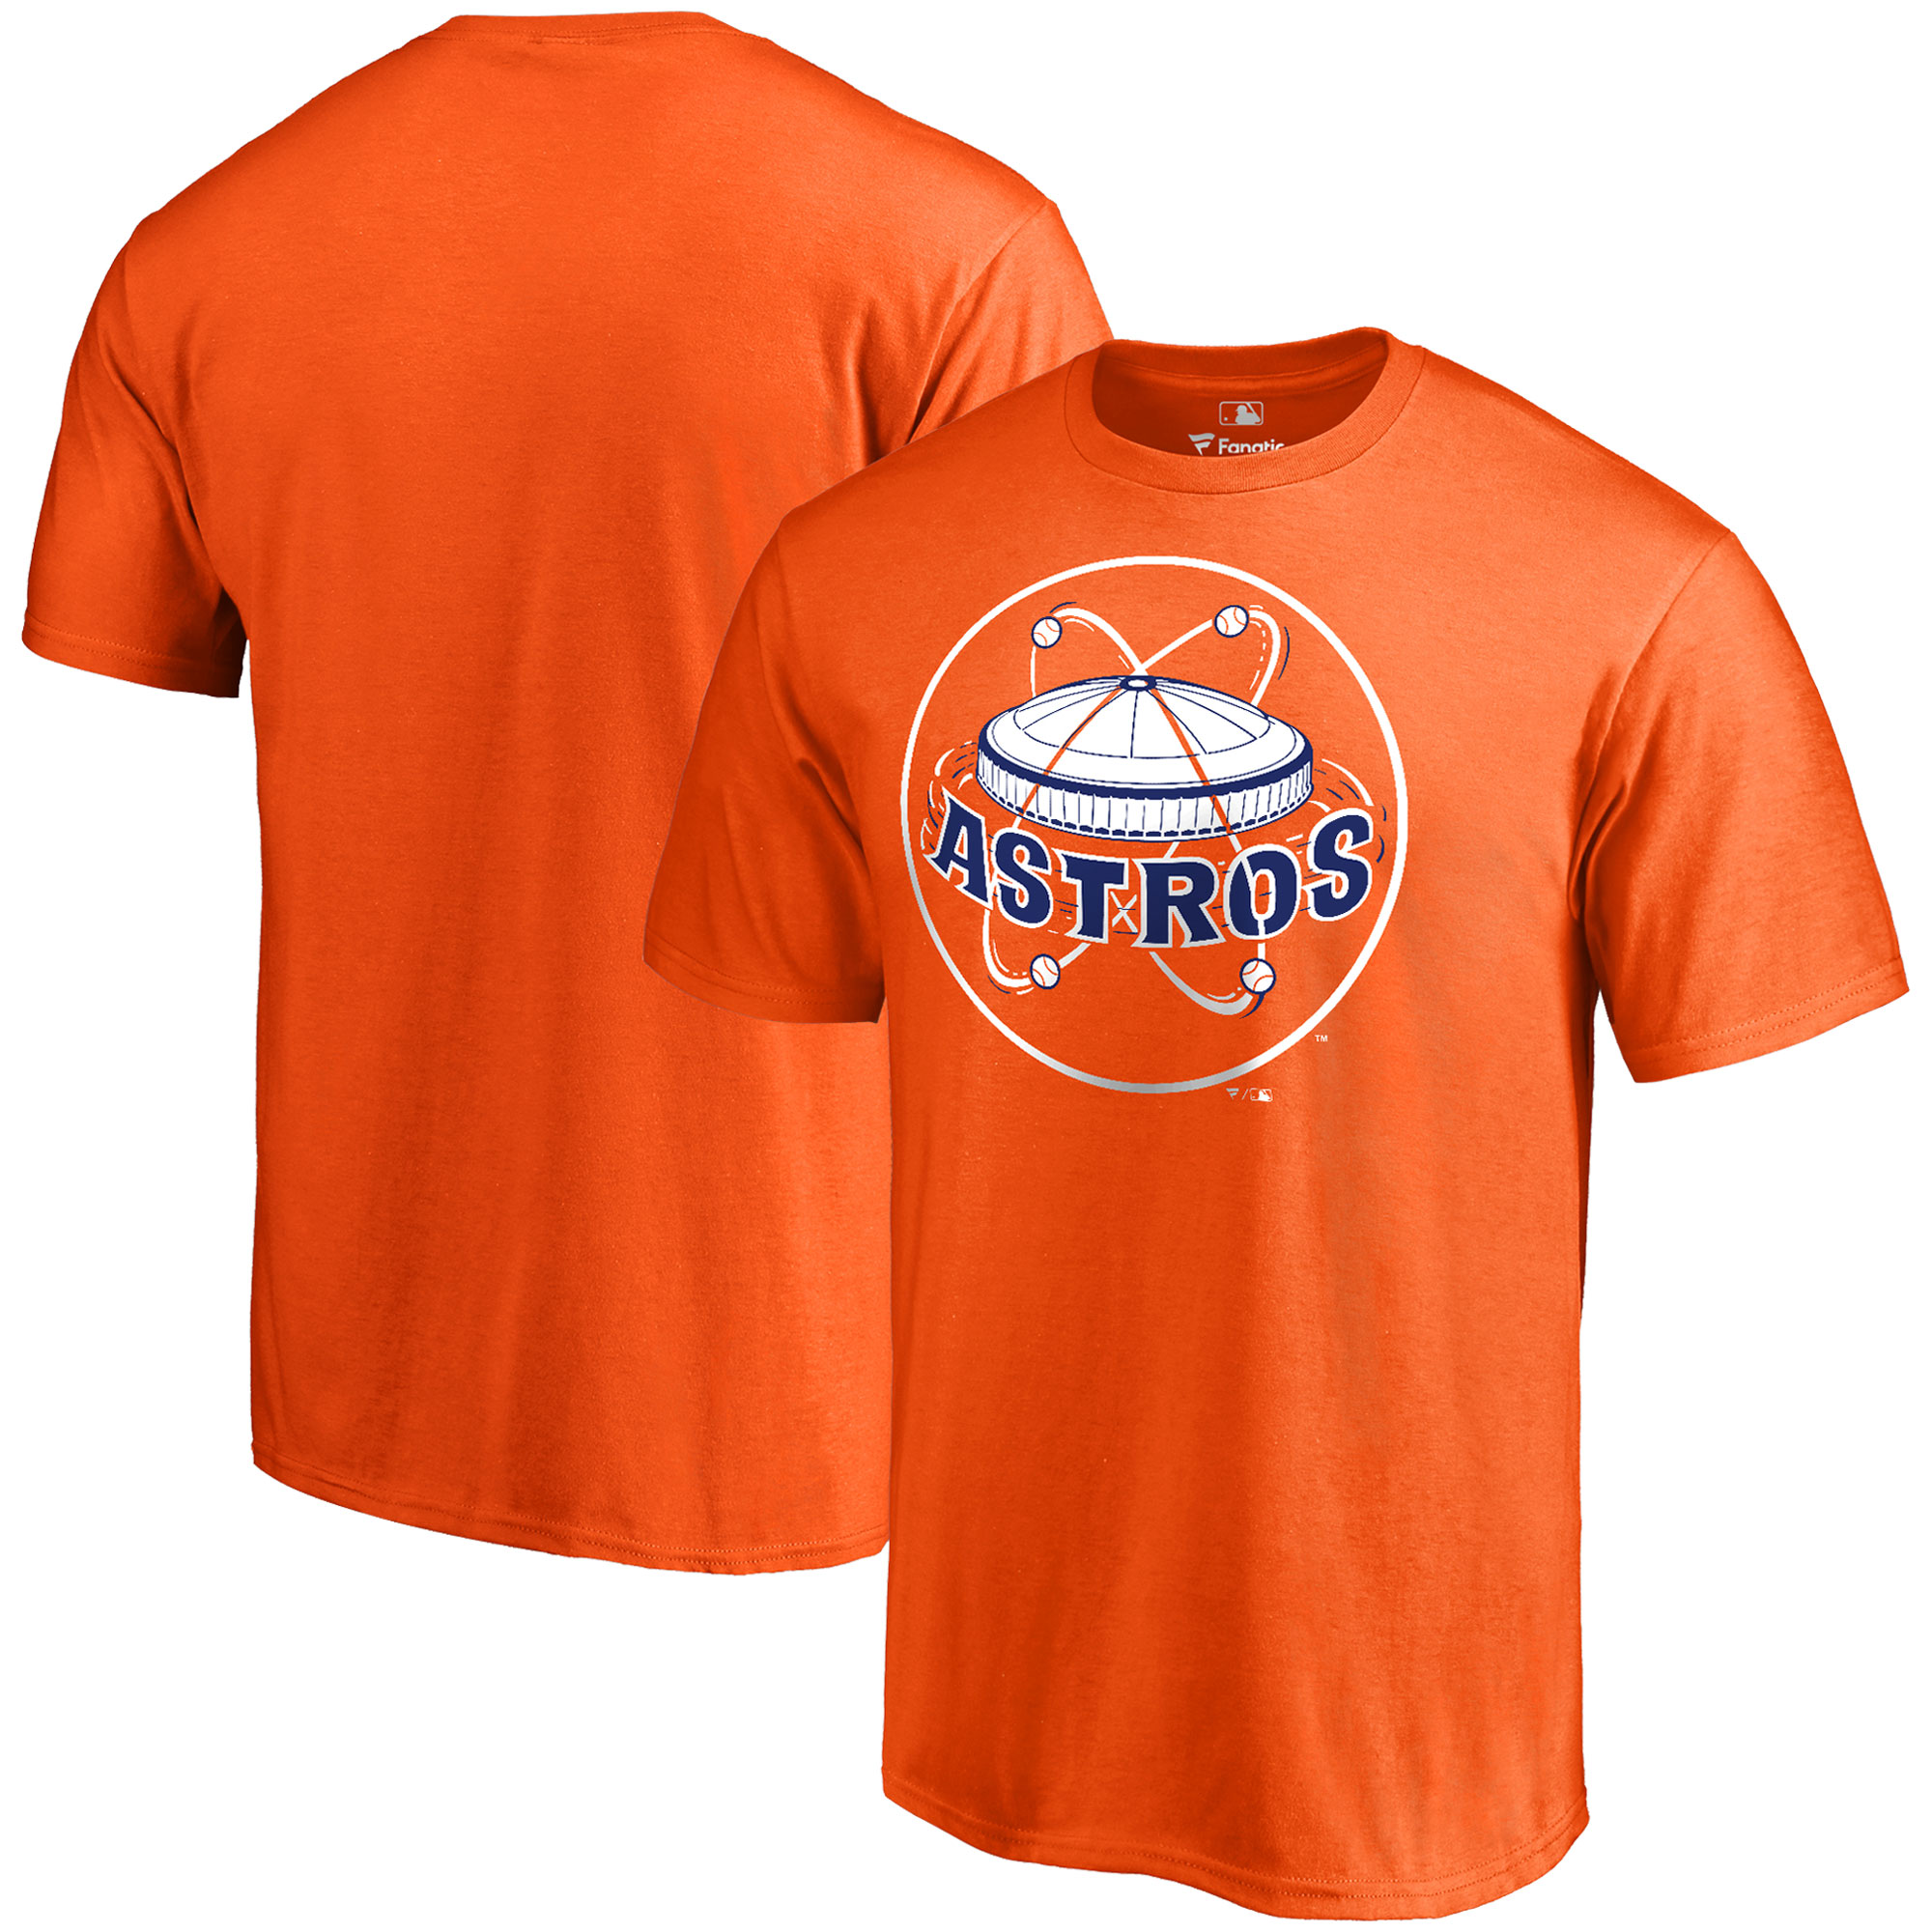 Houston Astros Fanatics Branded Cooperstown Forbes T-Shirt - Orange